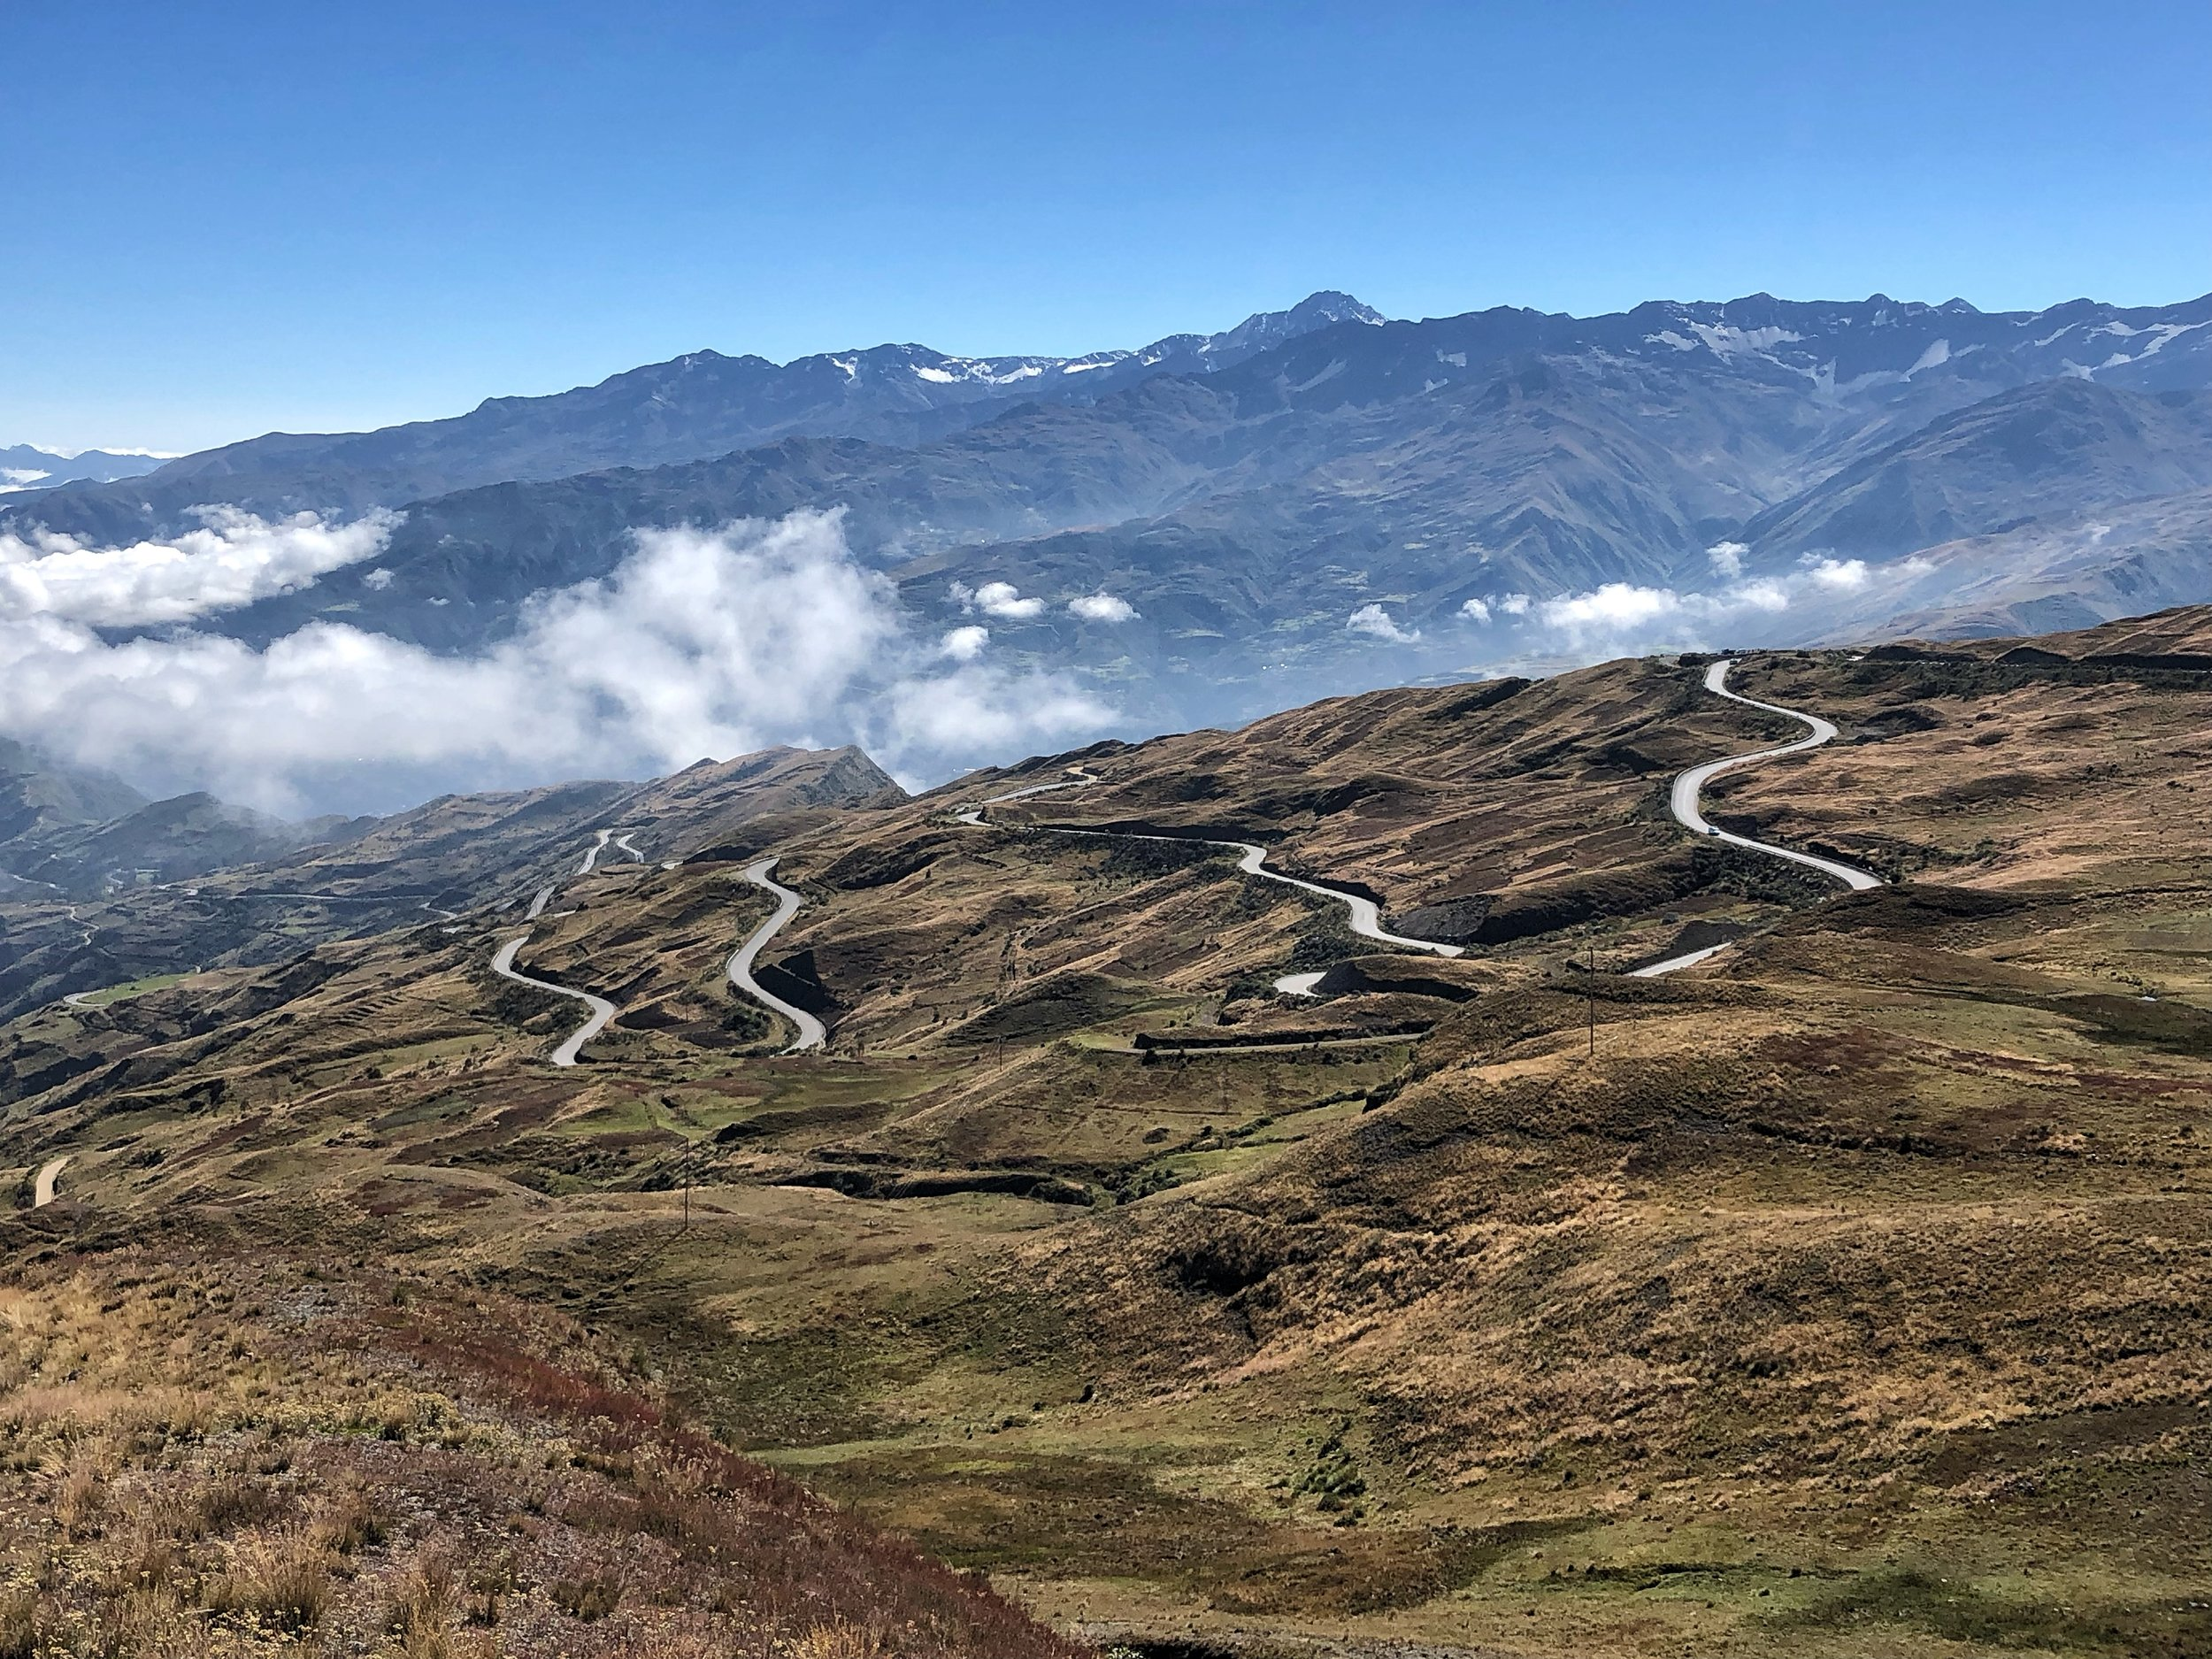 The road from La Paz to Sorata. The town of Sorata is at an altitude of 2,800m. I was there in 2010 and always wanted to come back to climb Ancohuma.